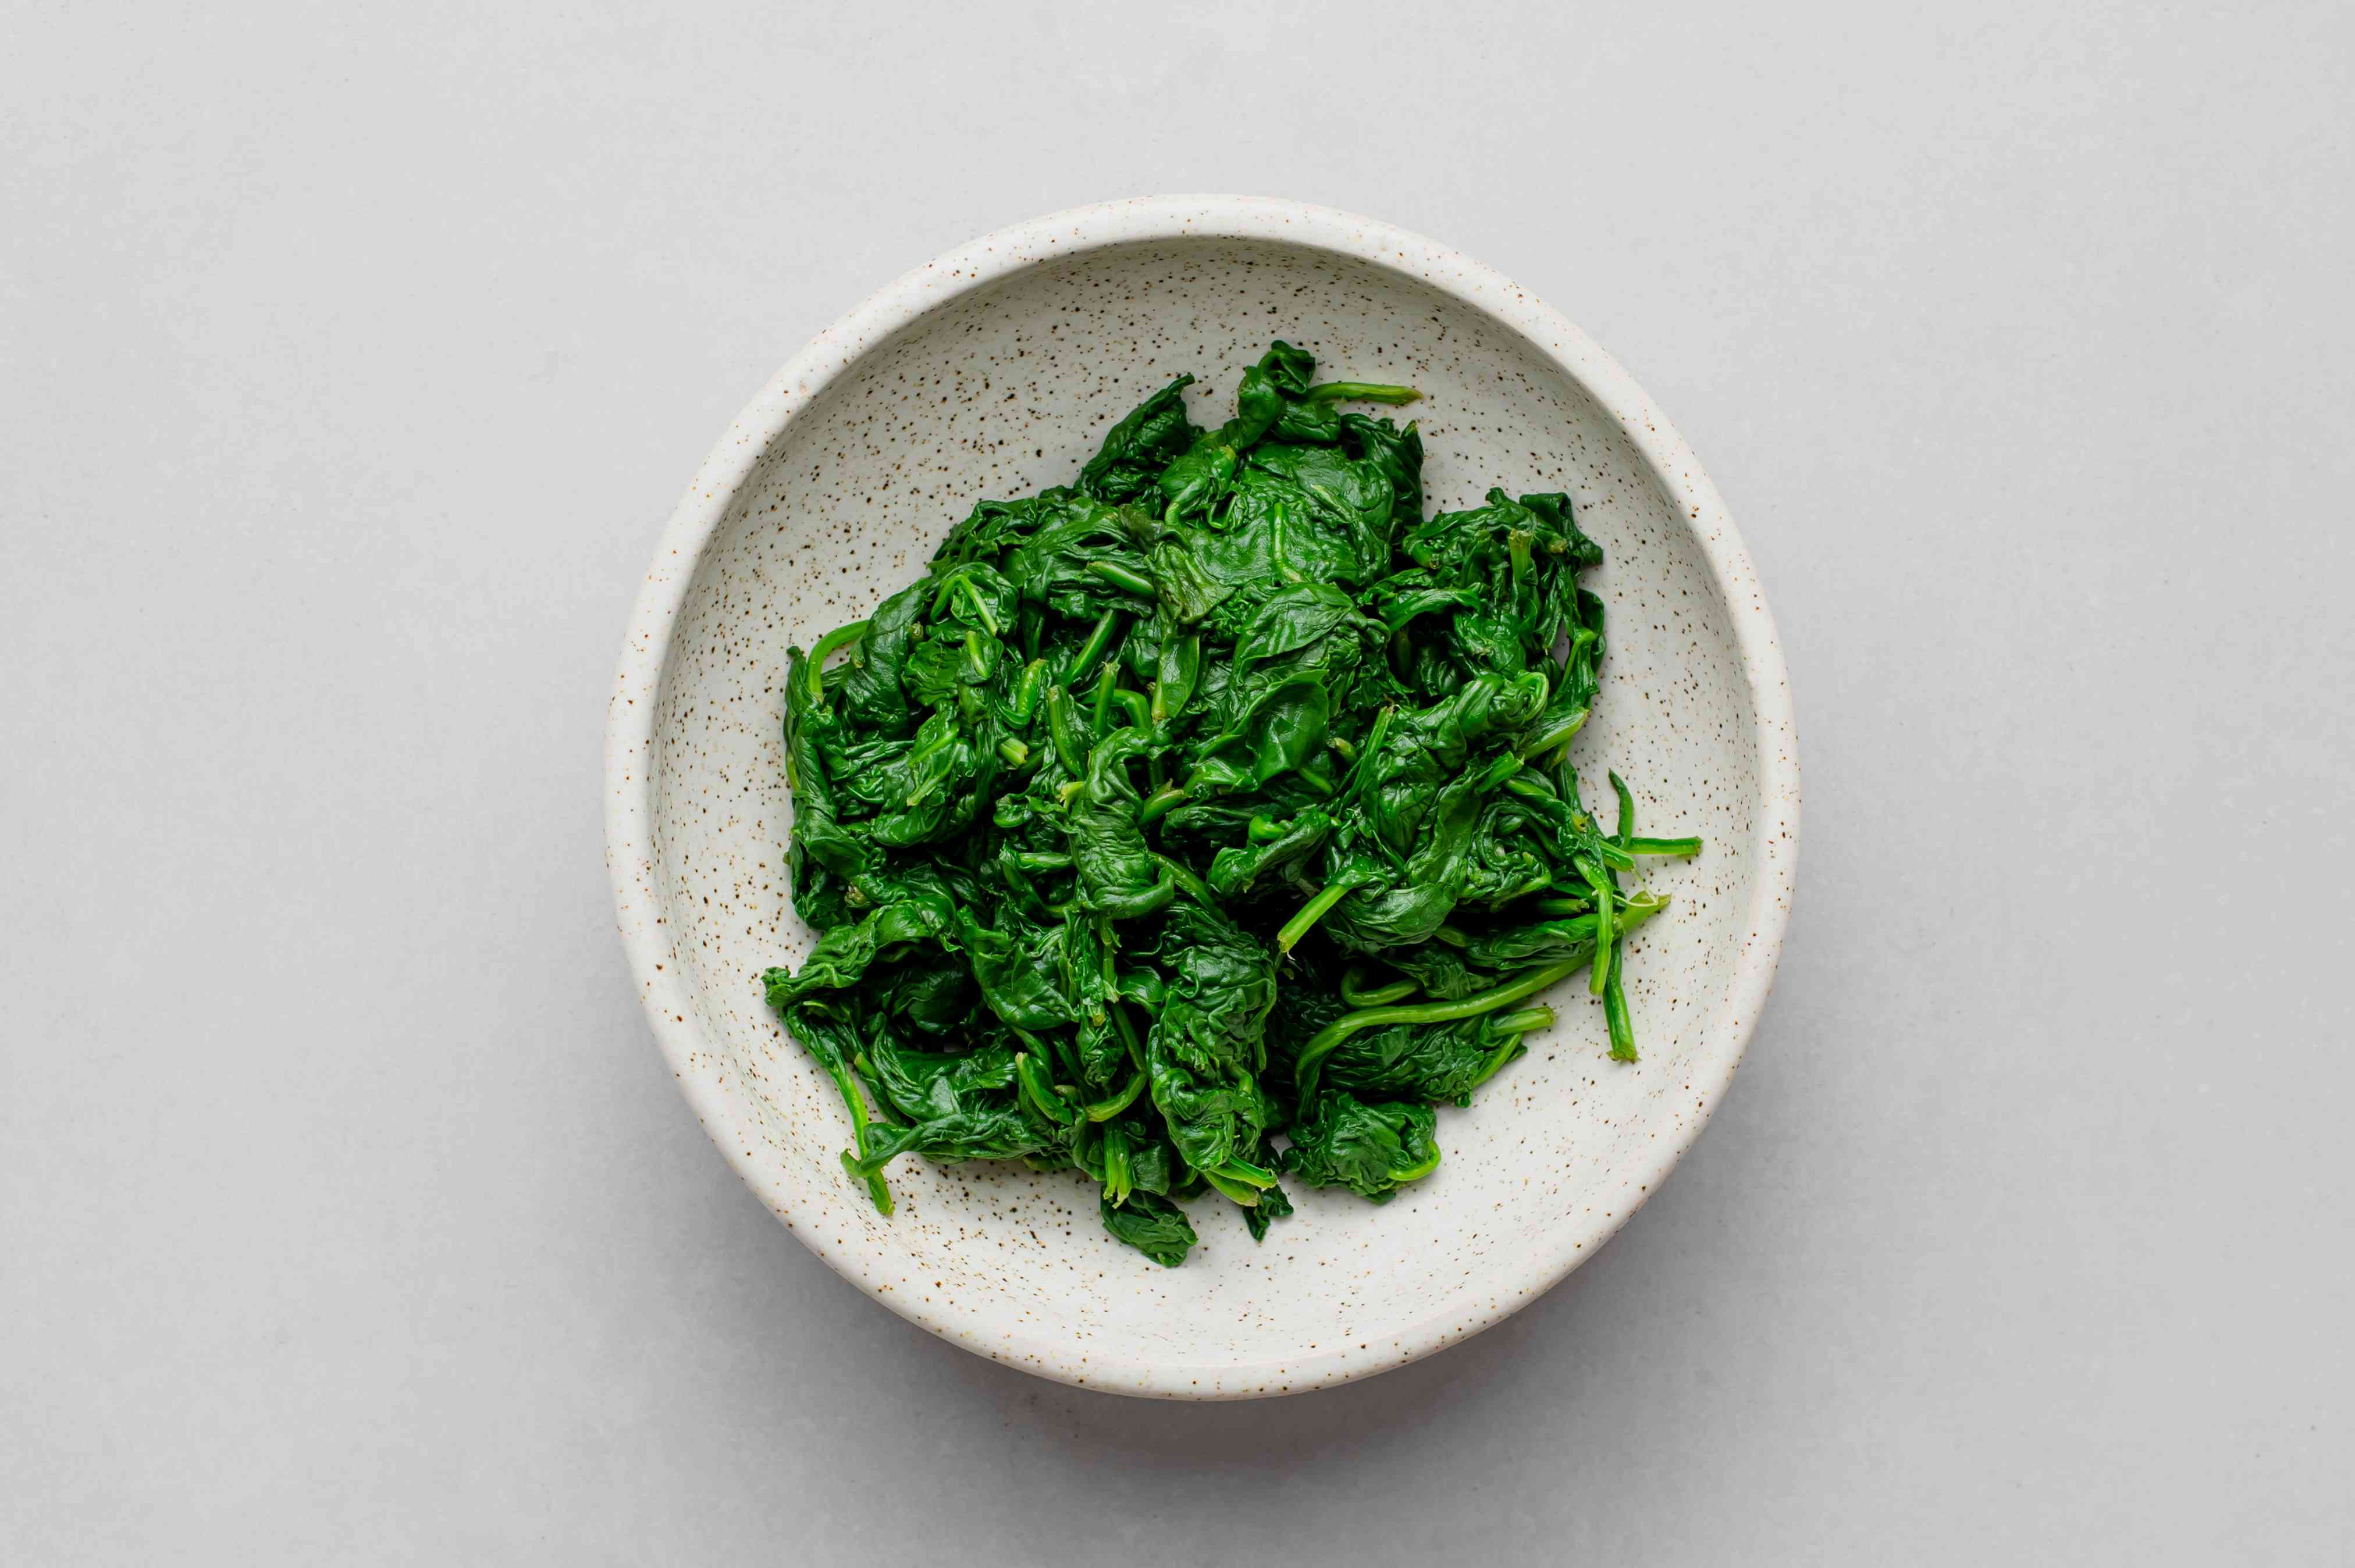 squeeze the spinach to remove excess water and transfer to a serving bowl